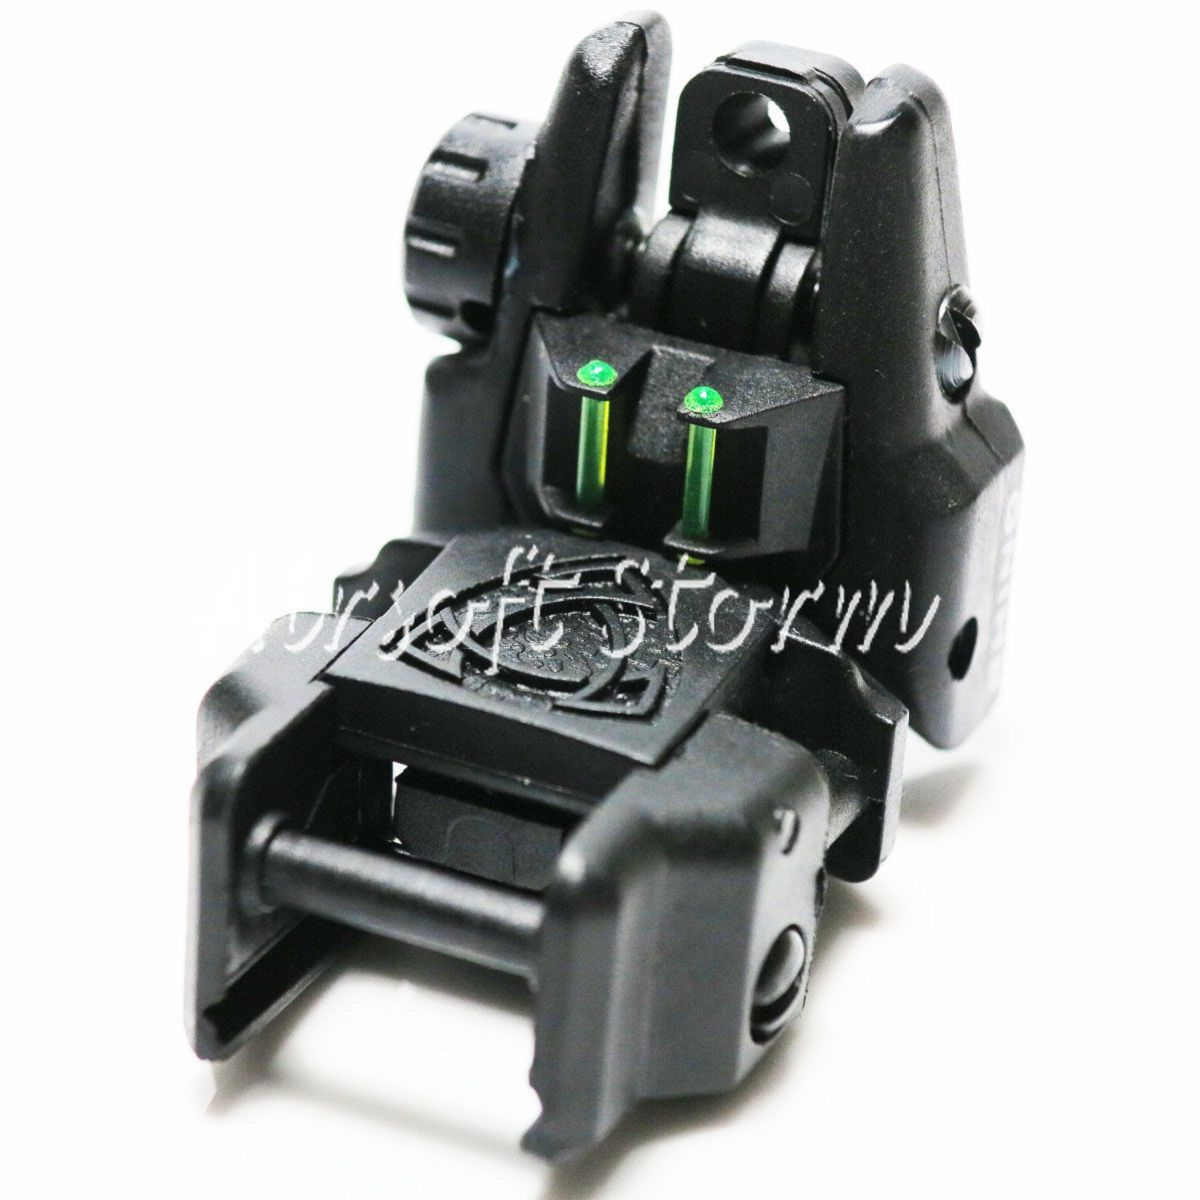 Airsoft AEG Gear APS Rhino Rear Sight with Fiber Optic Black/Green